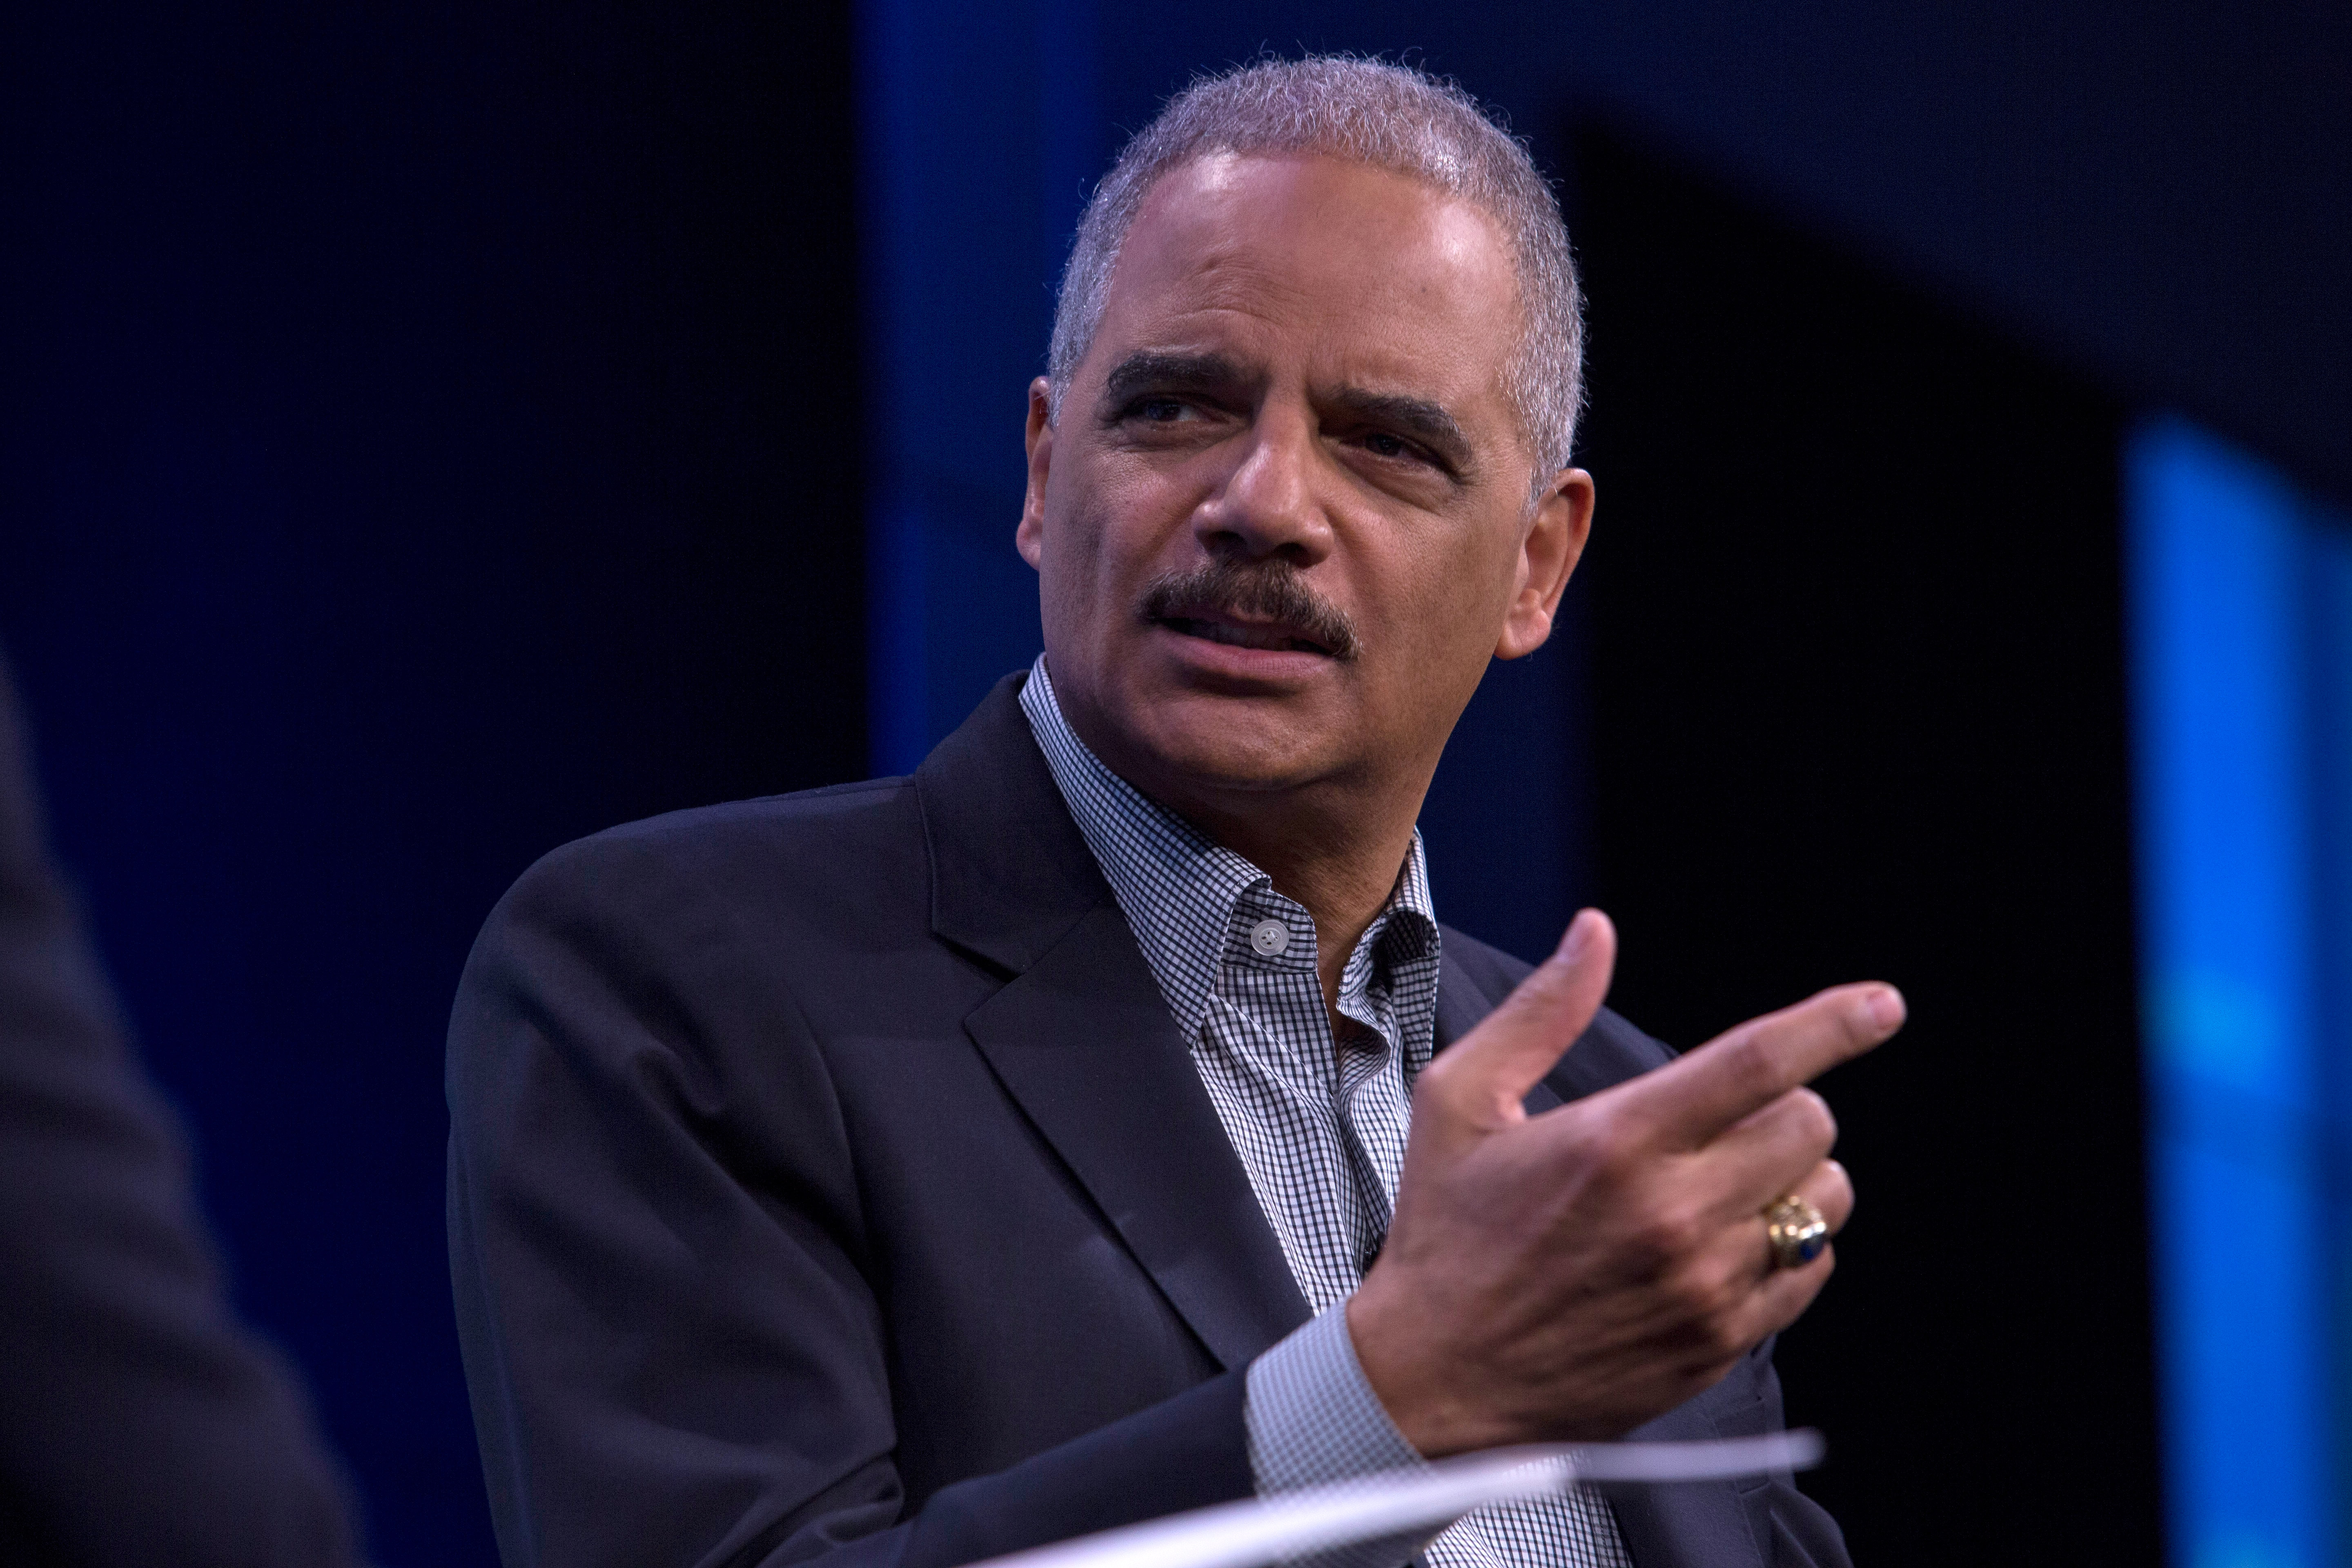 Eric Holder led the Justice Department during its investigation into the Ferguson, Missouri, Police Department.